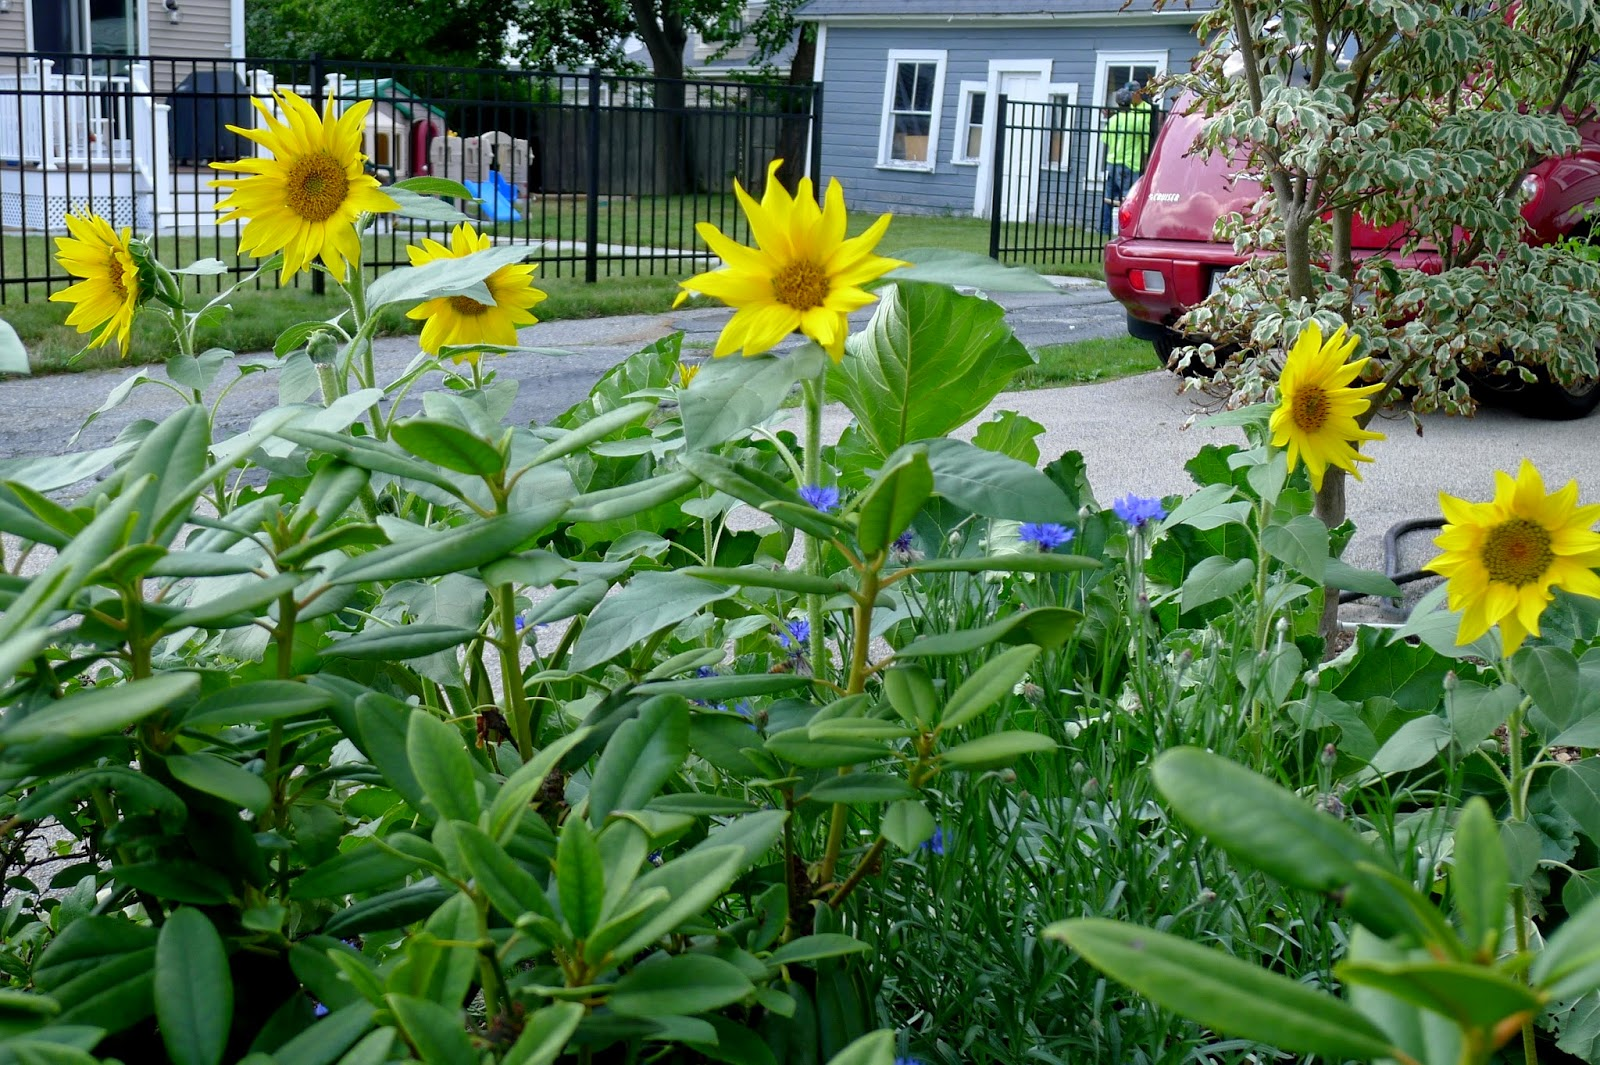 Sunseed Sunflowers, edible landscaping